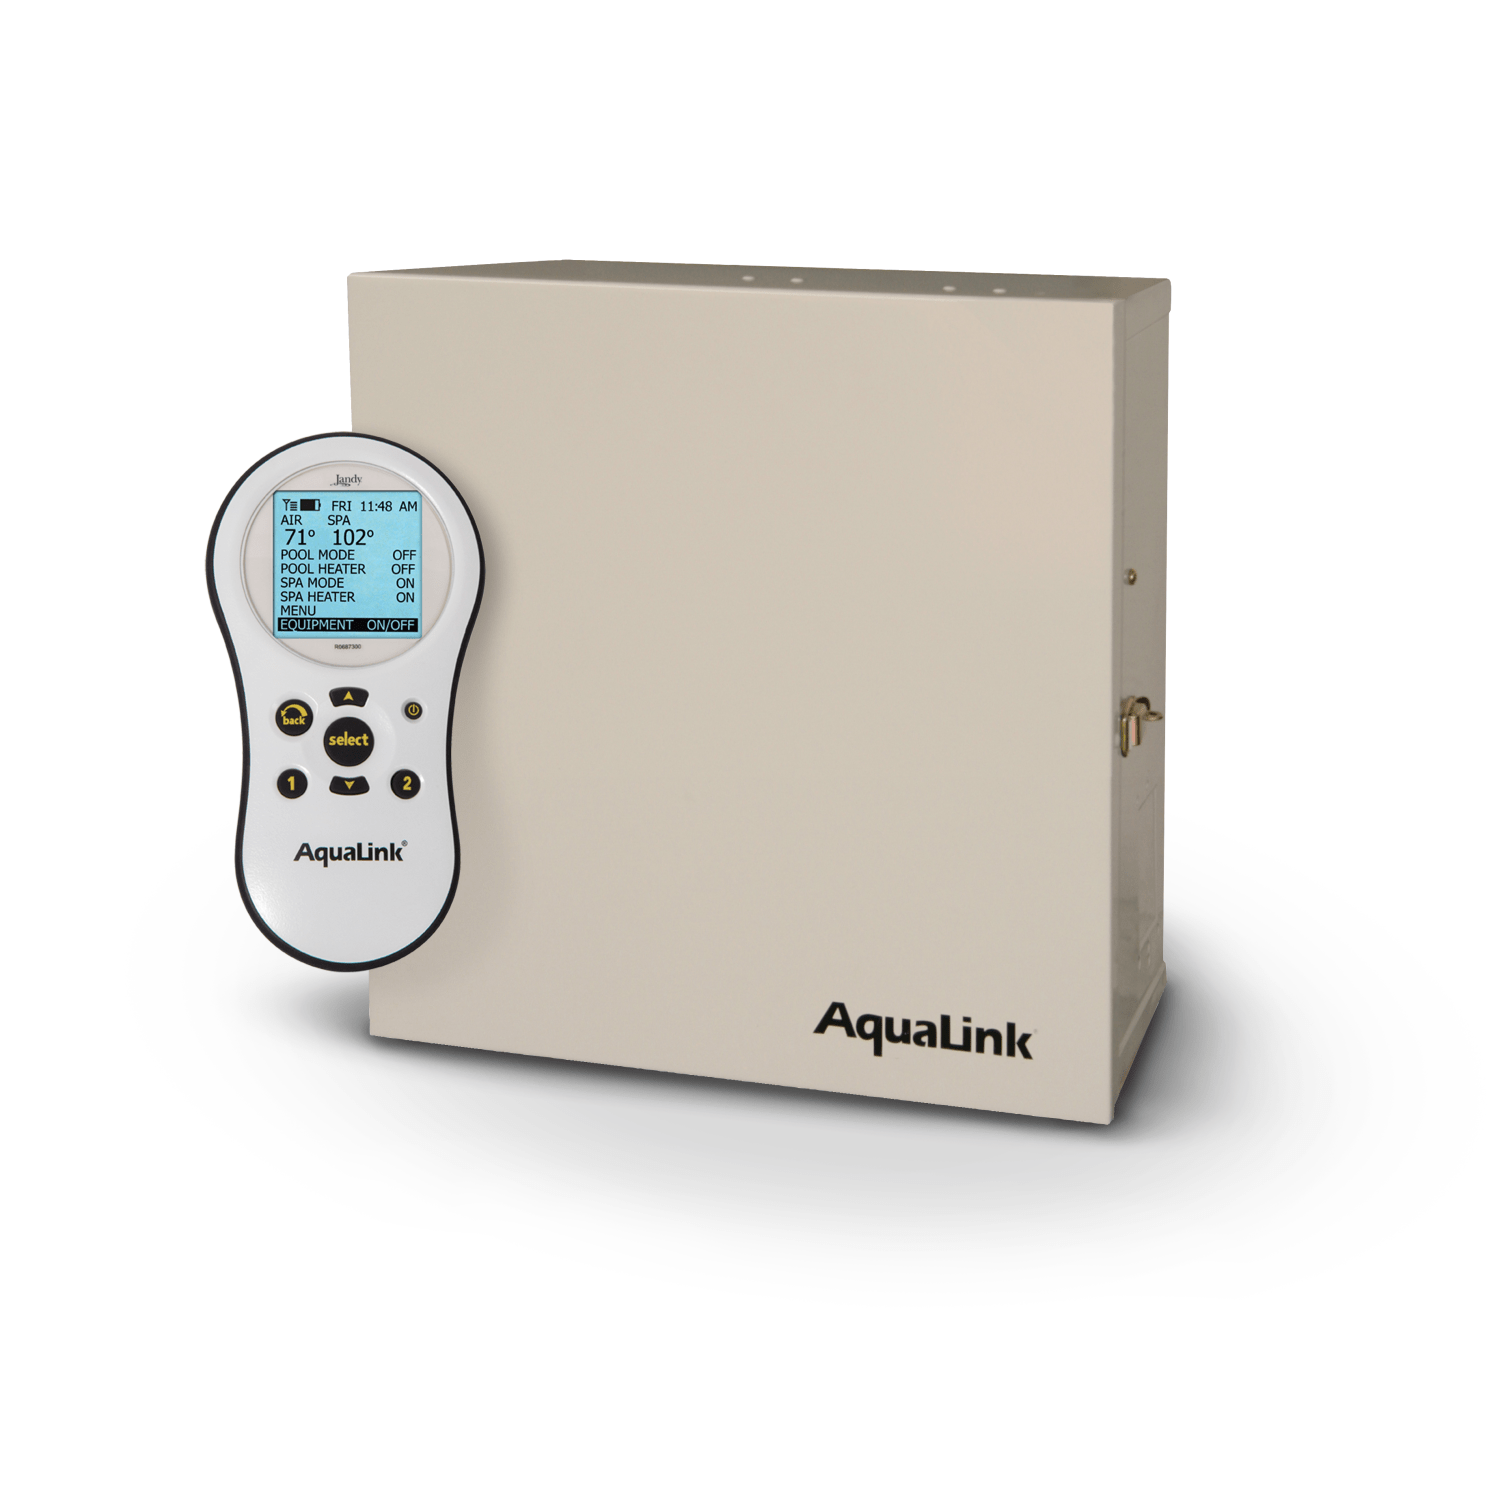 Aqualink Pda Jandy Pro Series Wireless Remote Control Kit Diagram For A Full Size Pool Automation System Handheld